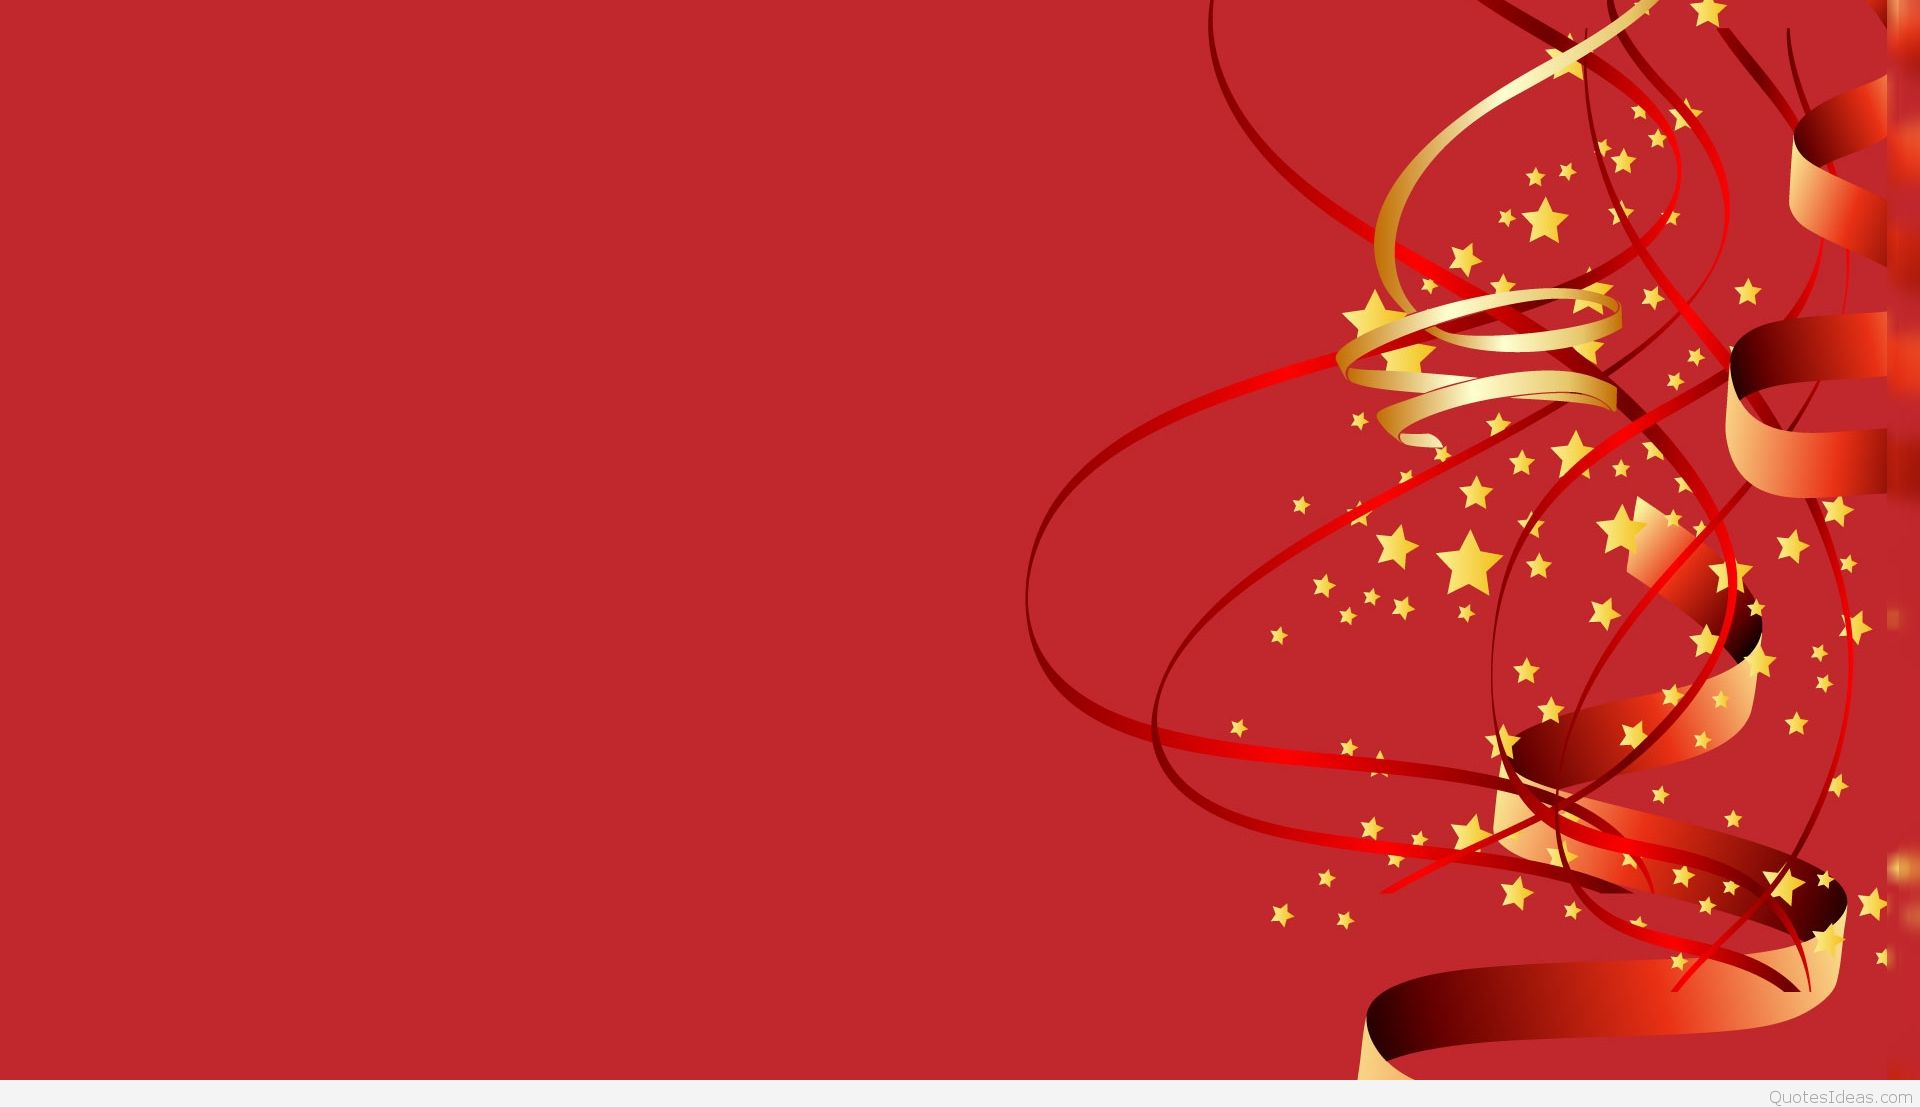 background images for birthday banner ; 1763523